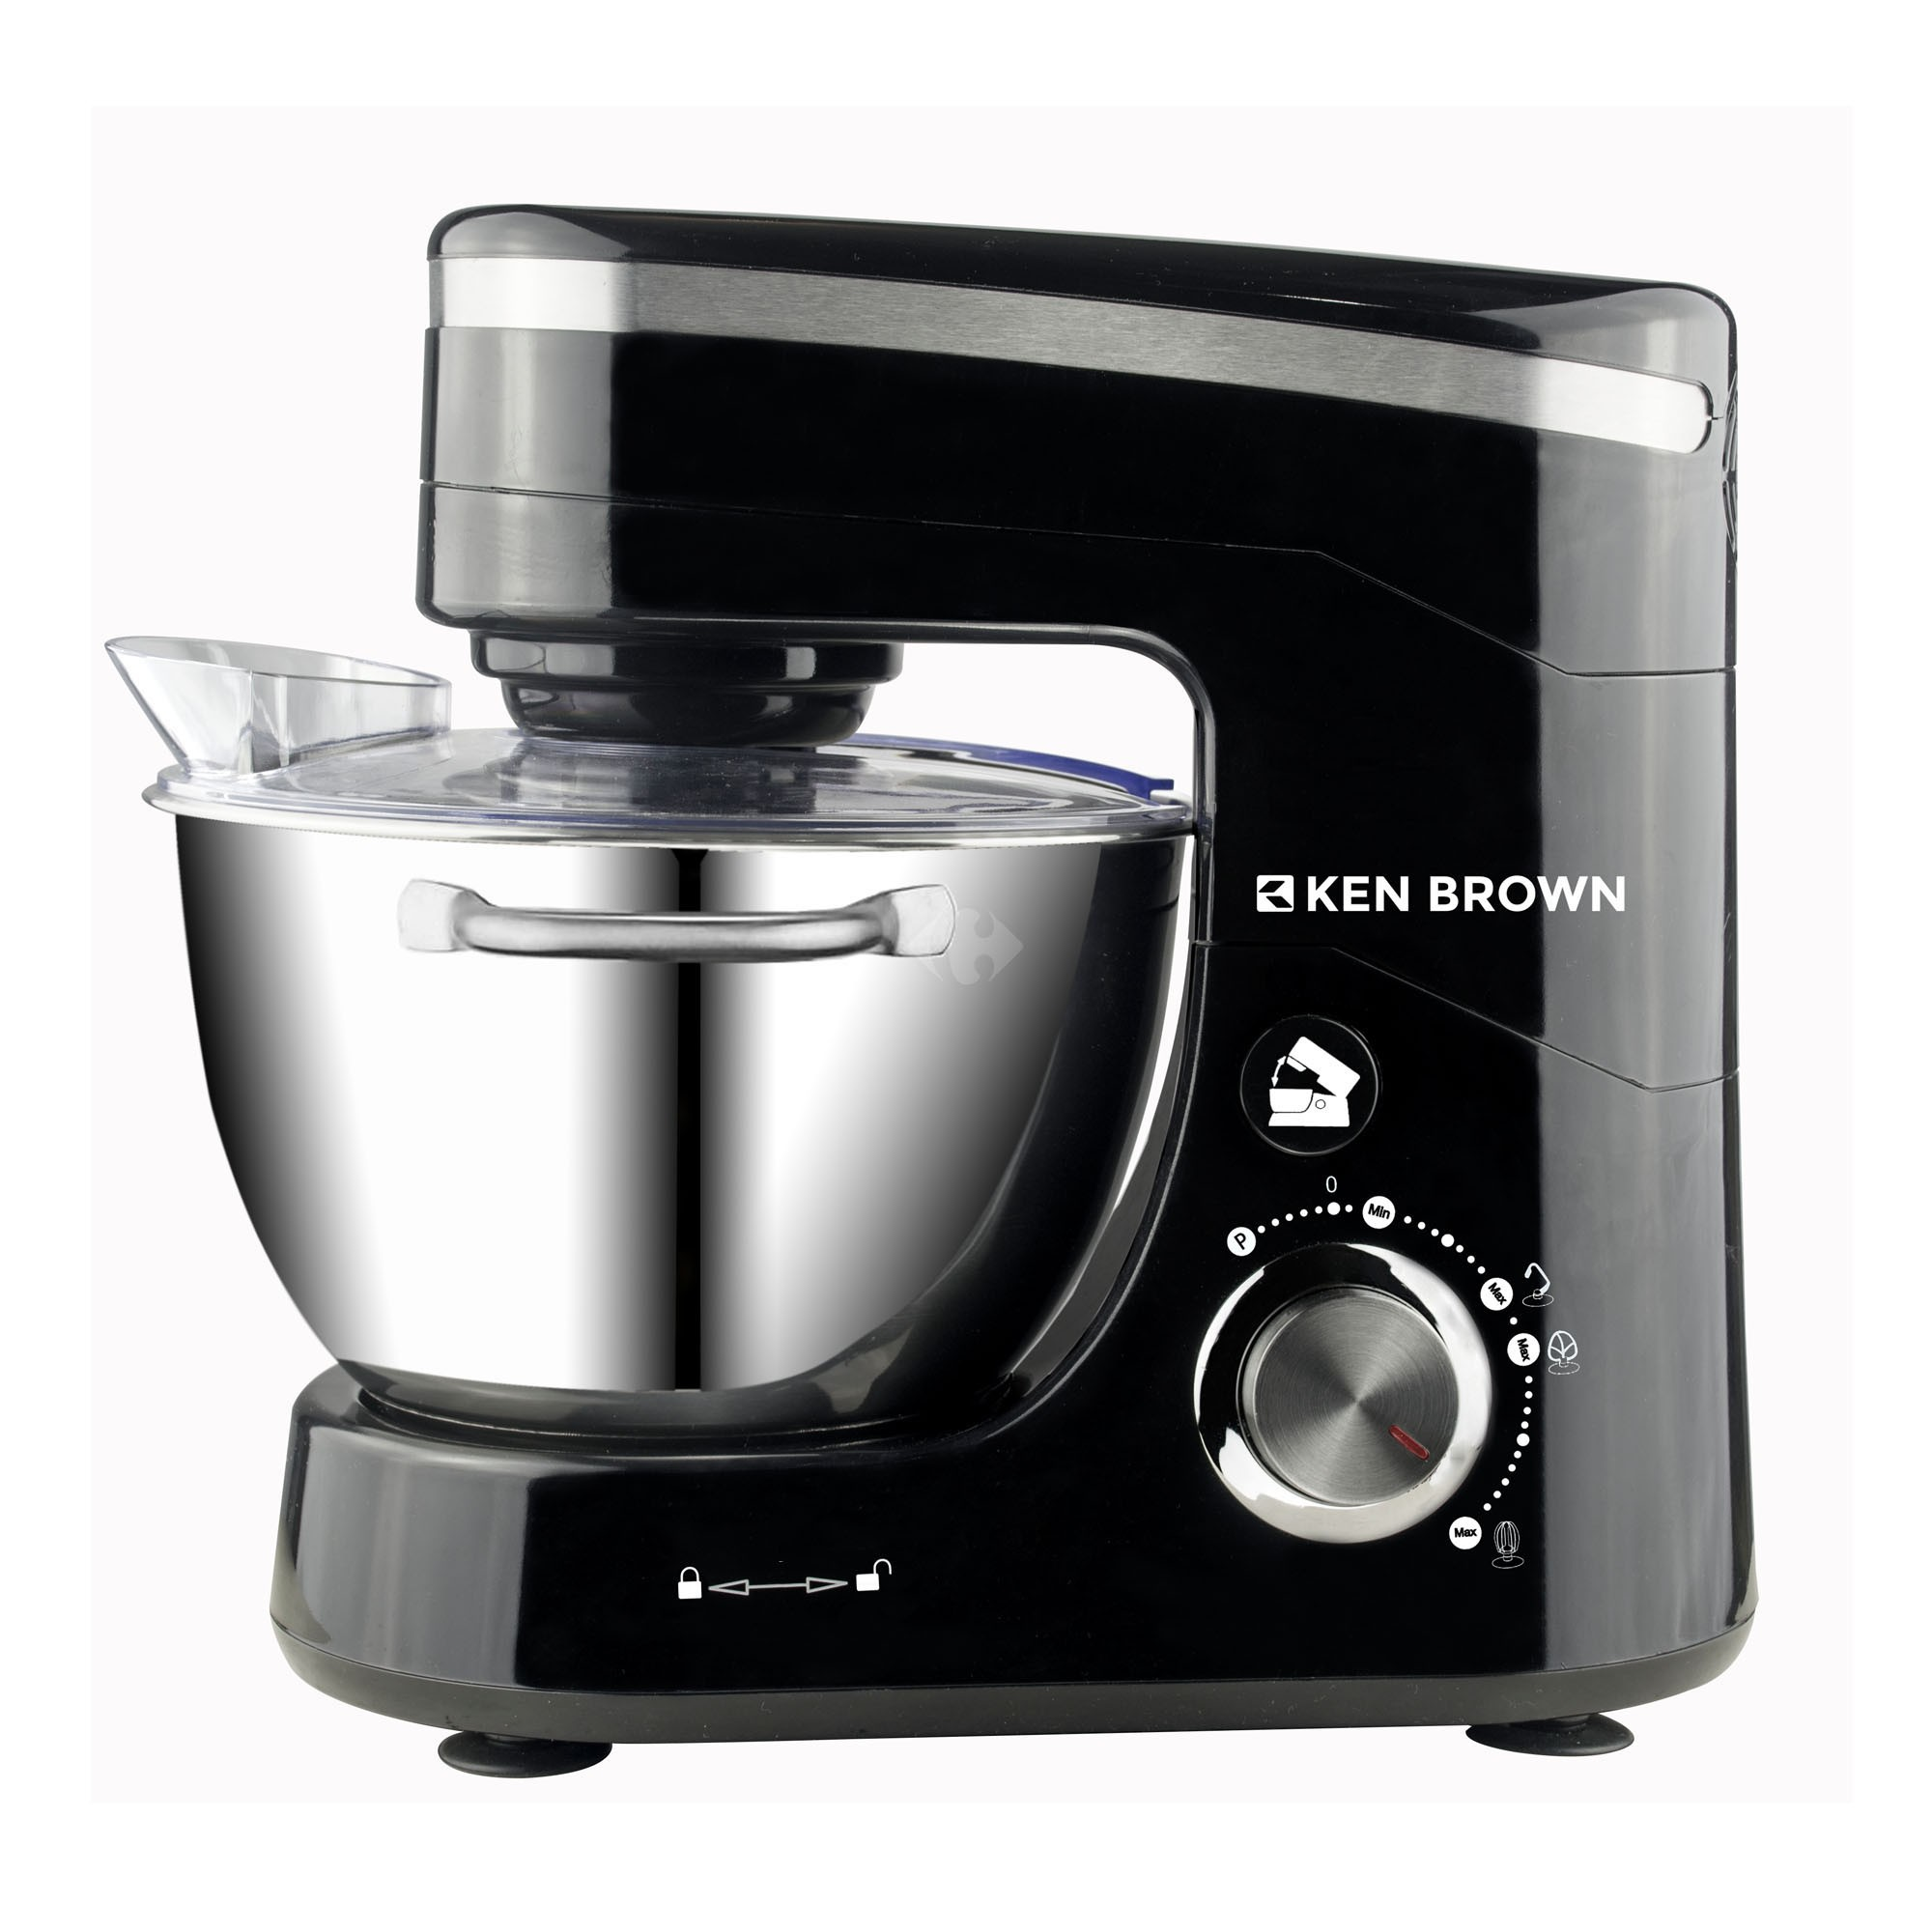 BATIDORA PLANETARIA KEN BROWN C/BOWL ACERO INOXIDABLE/800W.